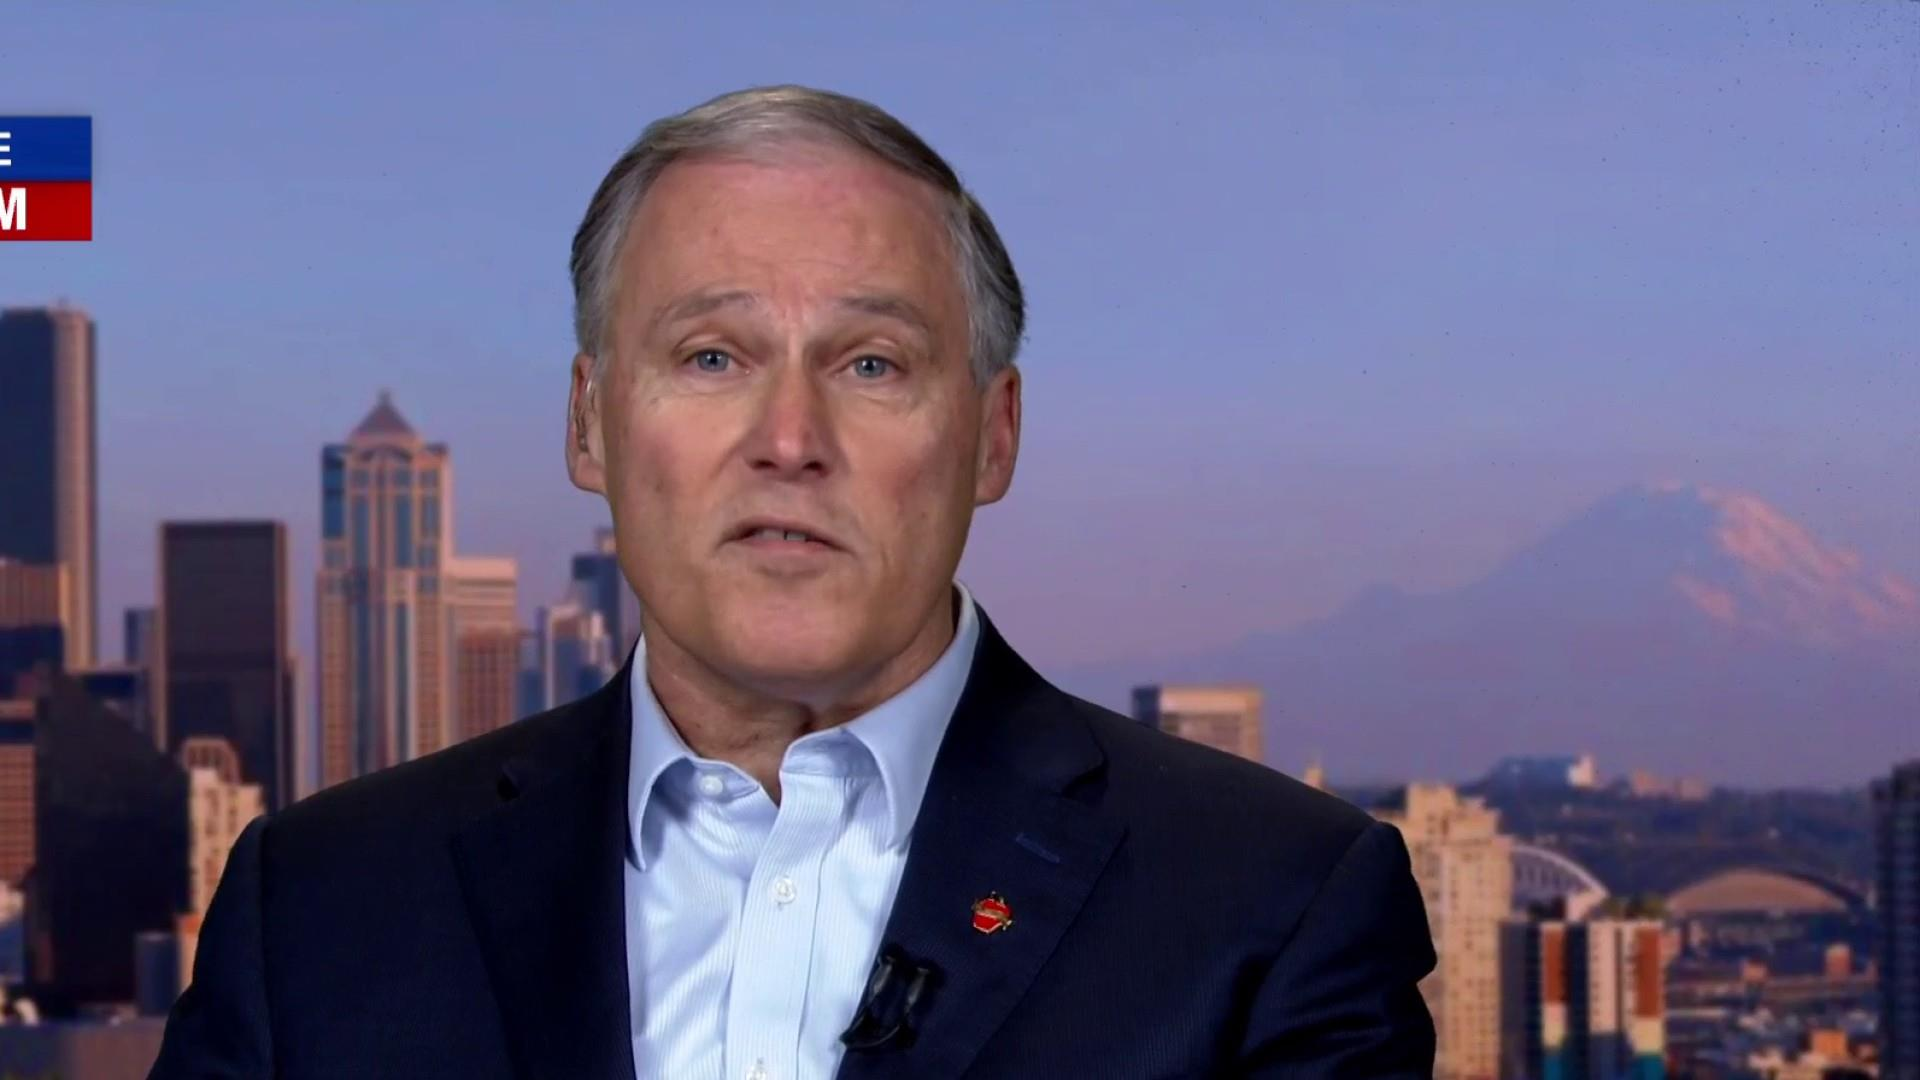 Jay Inslee: The next President needs to make climate change 'a priority'